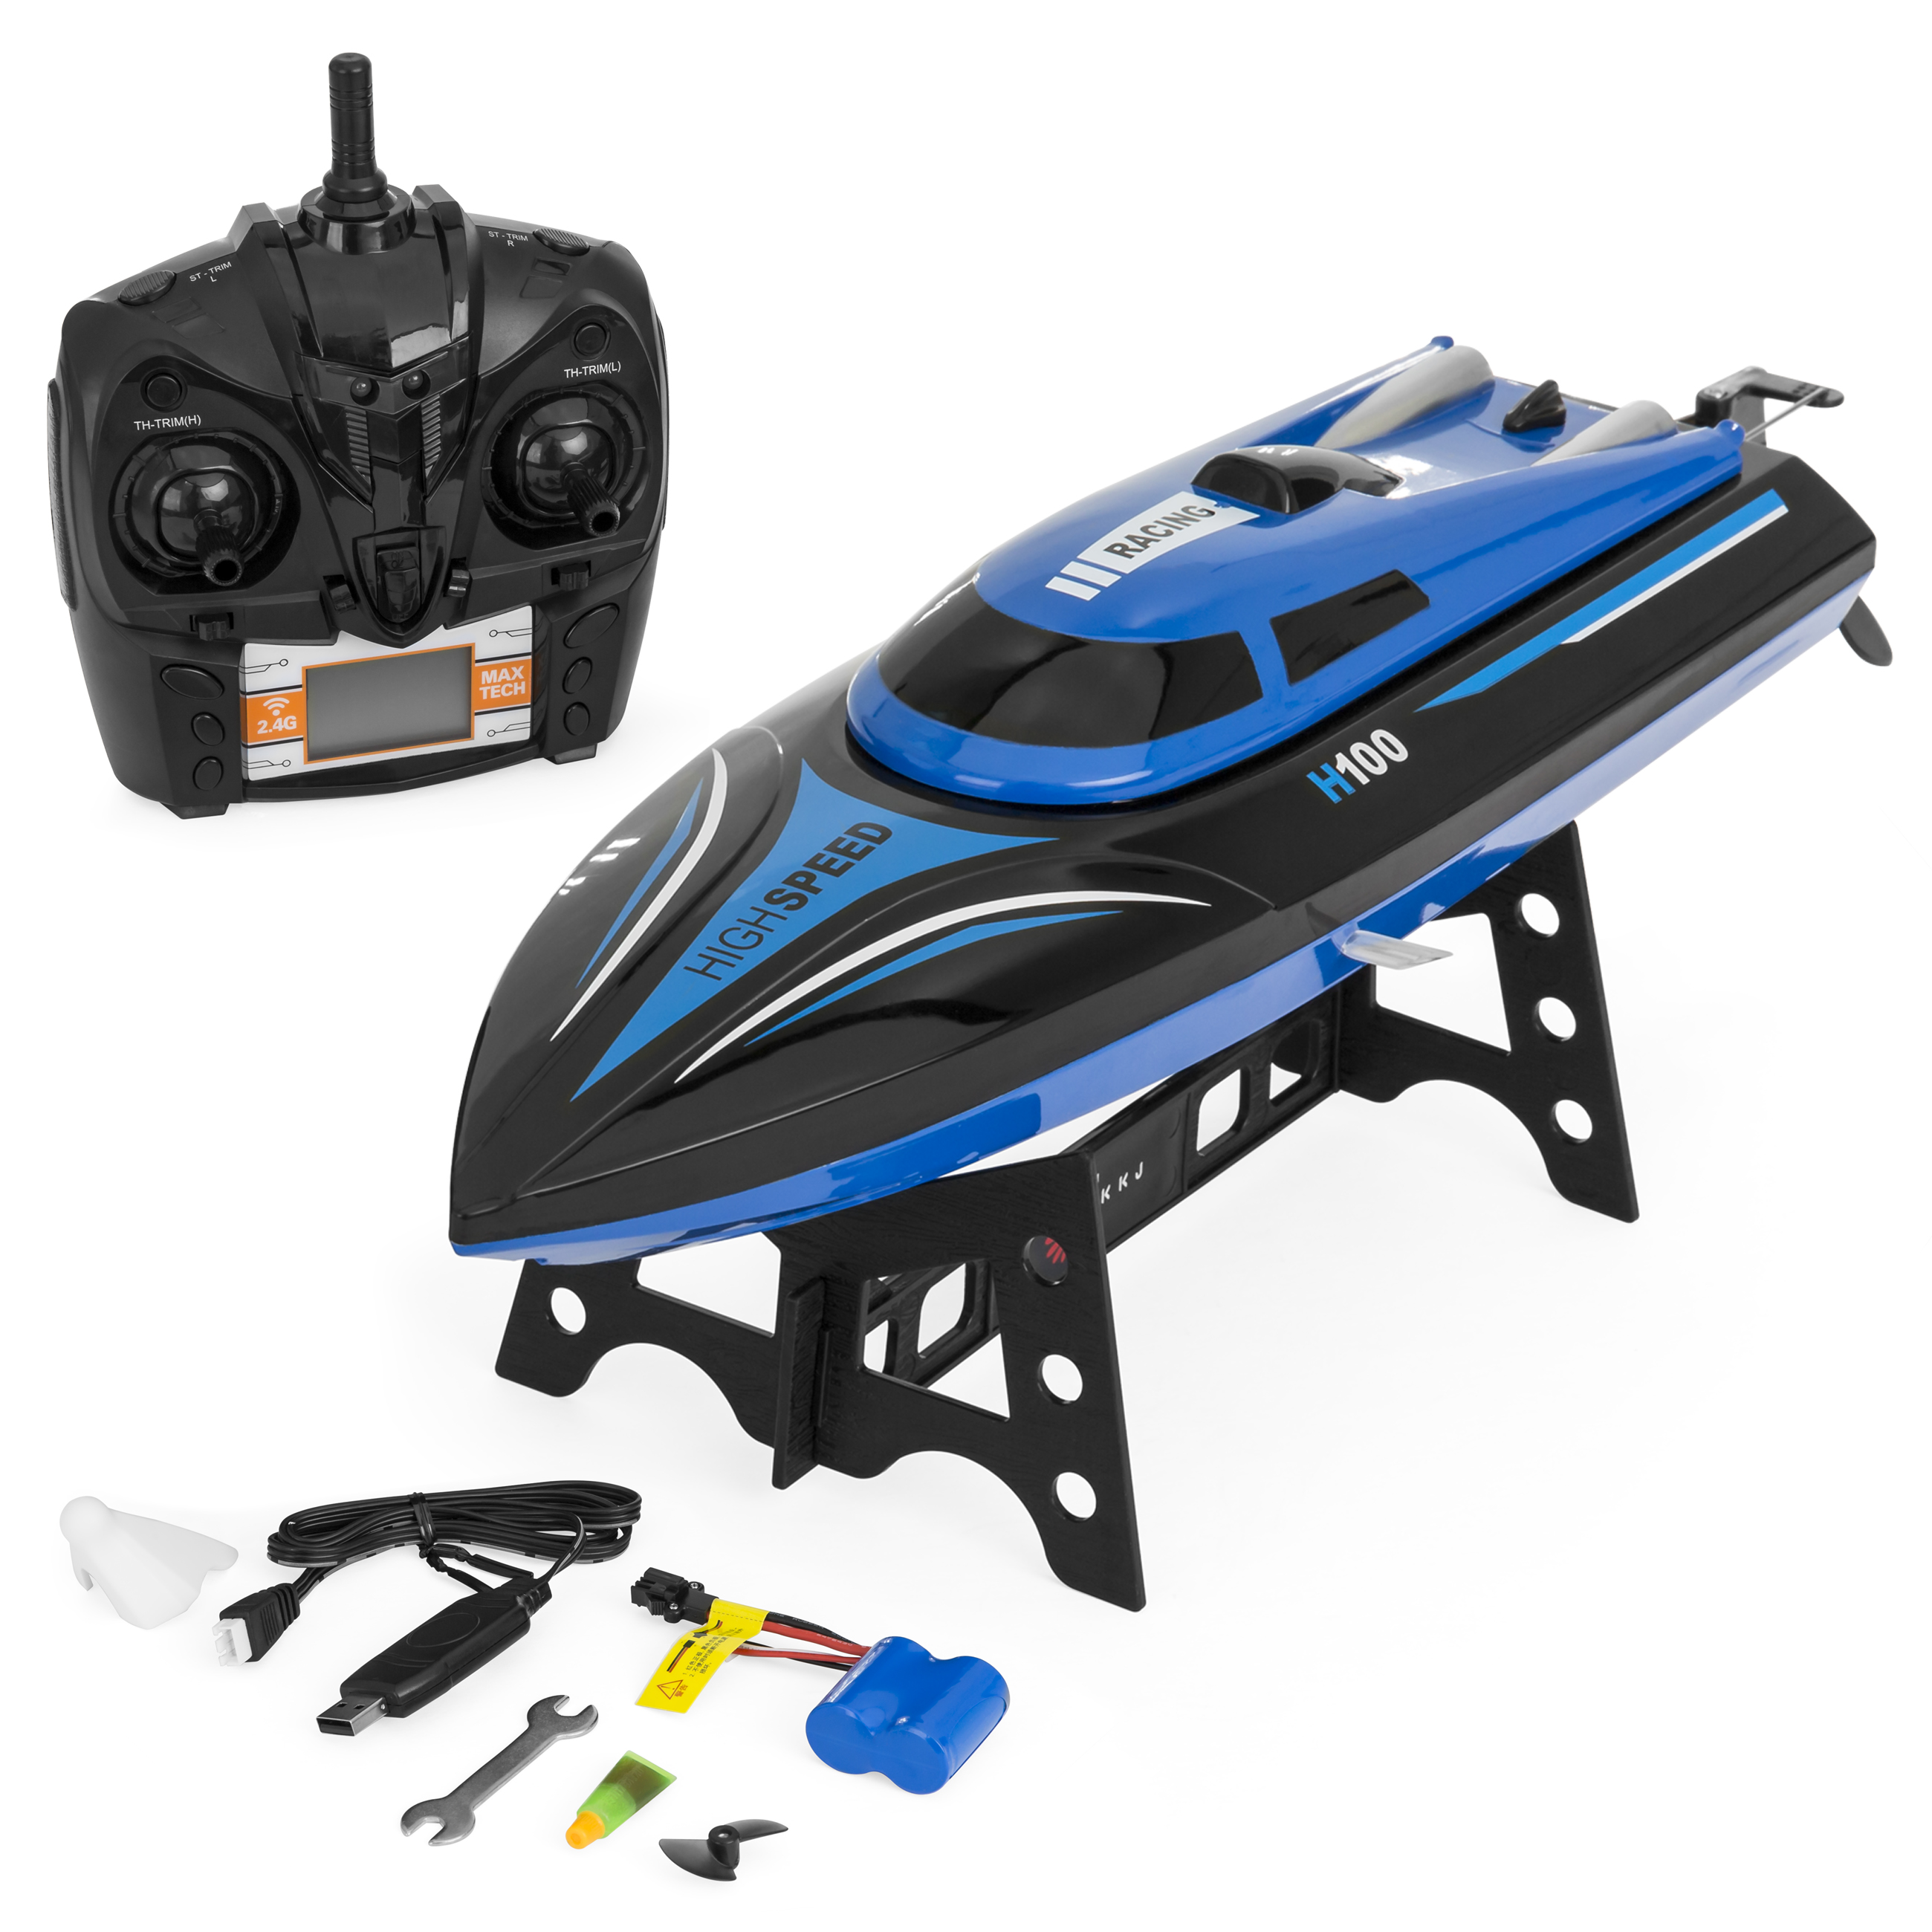 Best Choice Products H100 4-Channel 2.4GHz Remote Control High Speed Racing RC Boat w/ Rechargeable Batteries - Blue